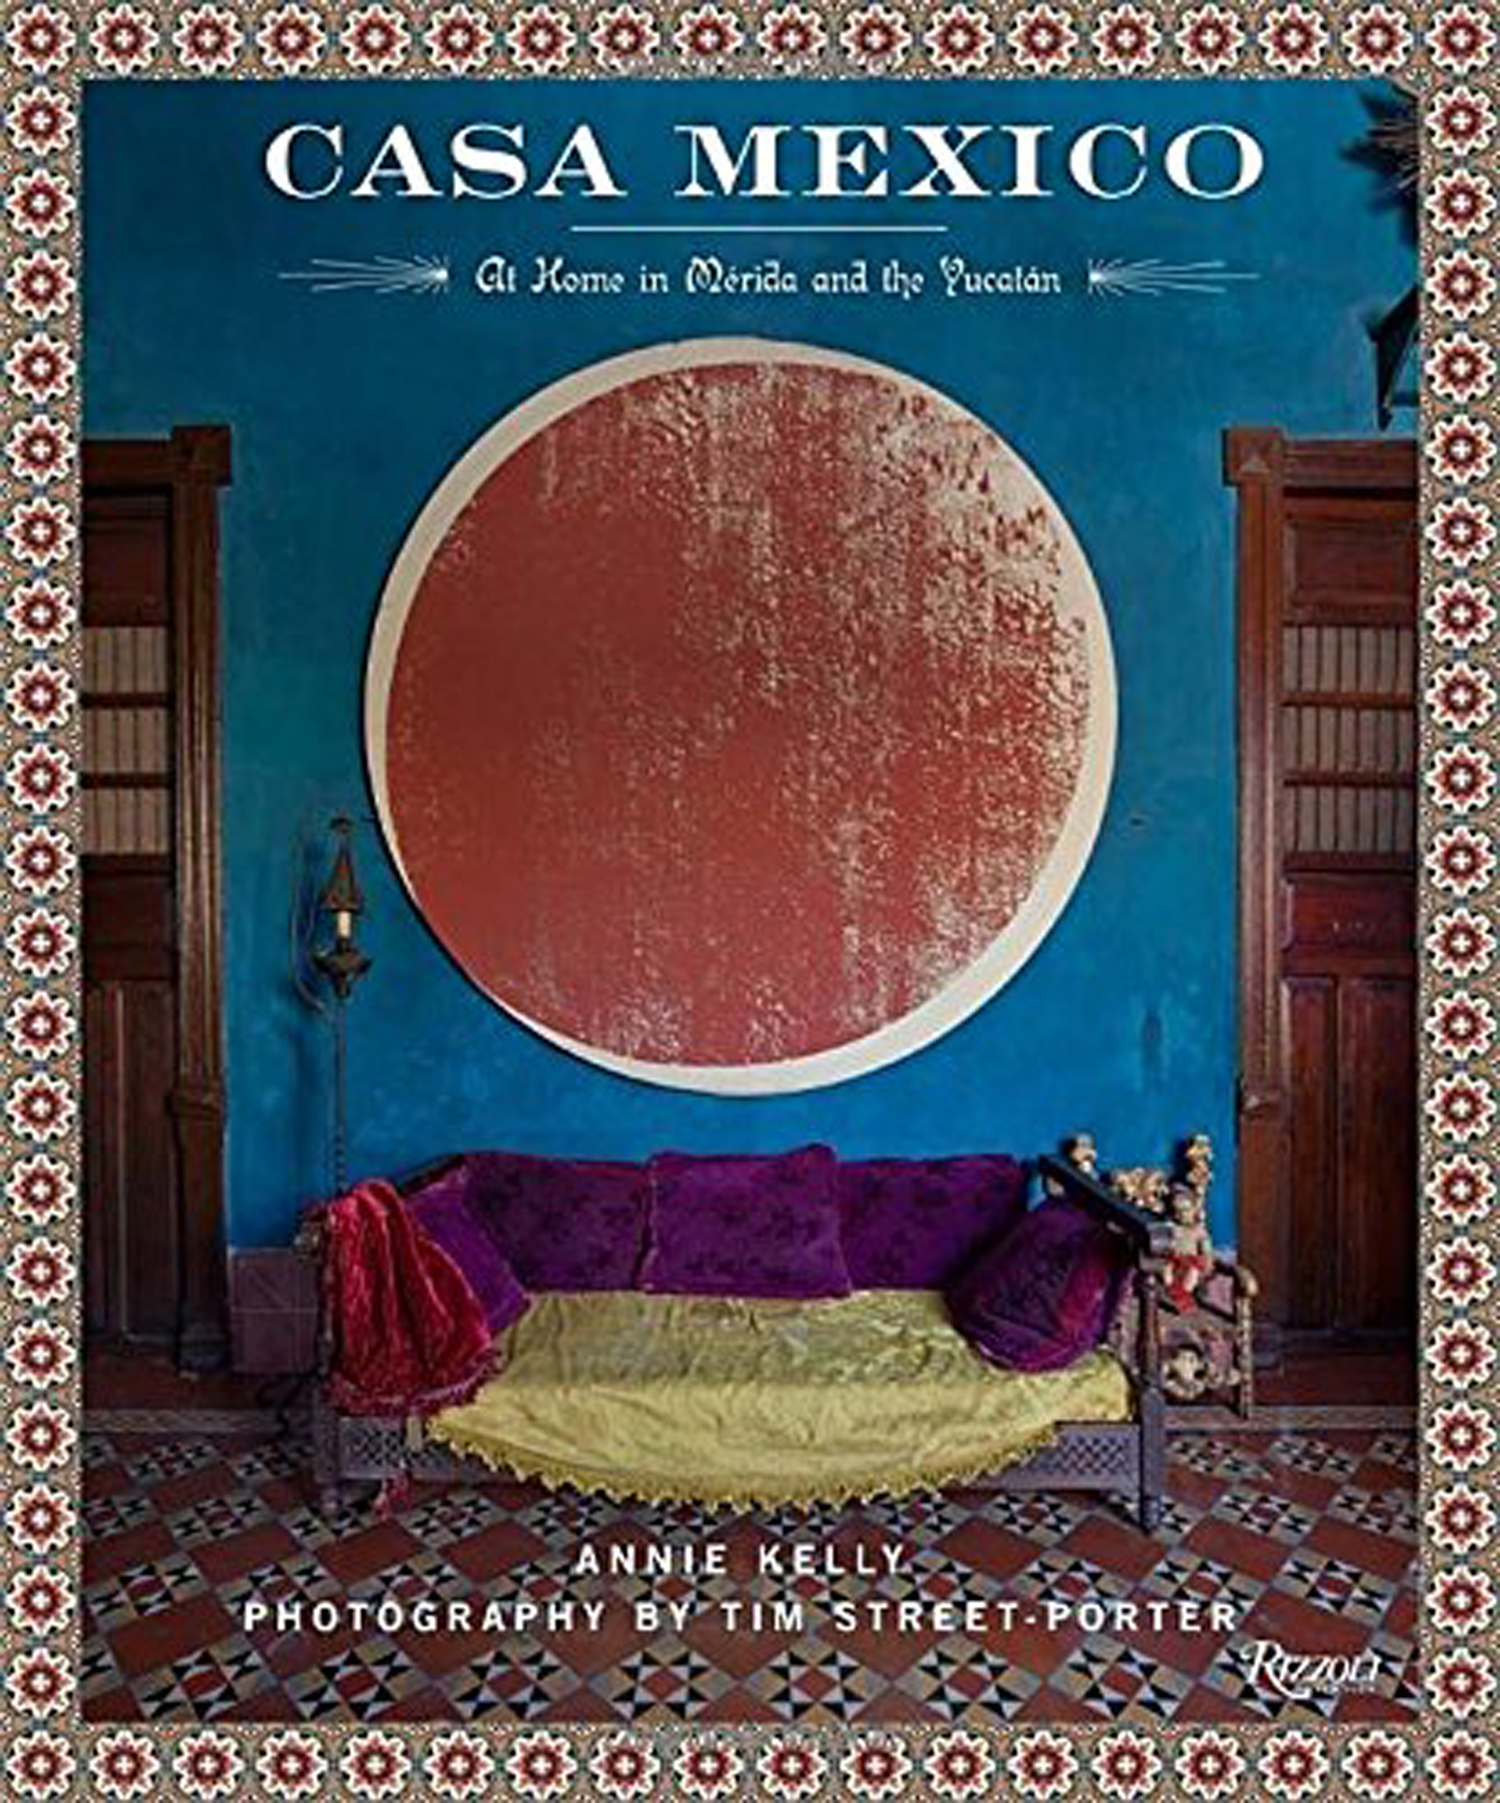 Casa Mexico: At Home in Merida and the Yucatan by Annie Kelly